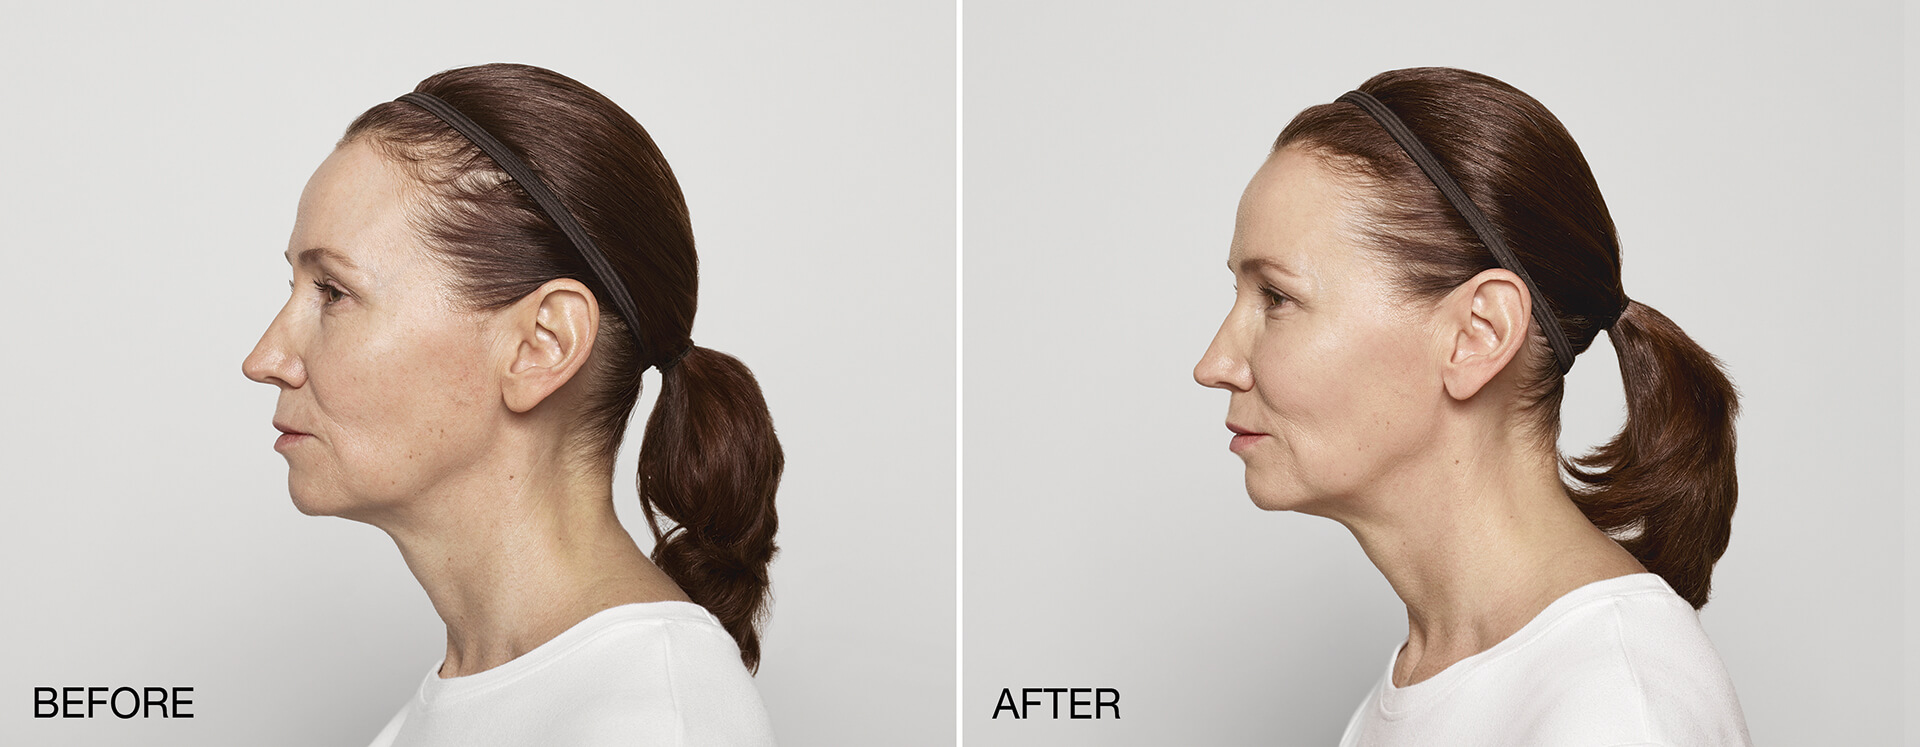 A combination of the Dysport® and Restylane® products were used to restore fullness to the cheeks and lips, and smooth wrinkles in the forehead and around the eyes.